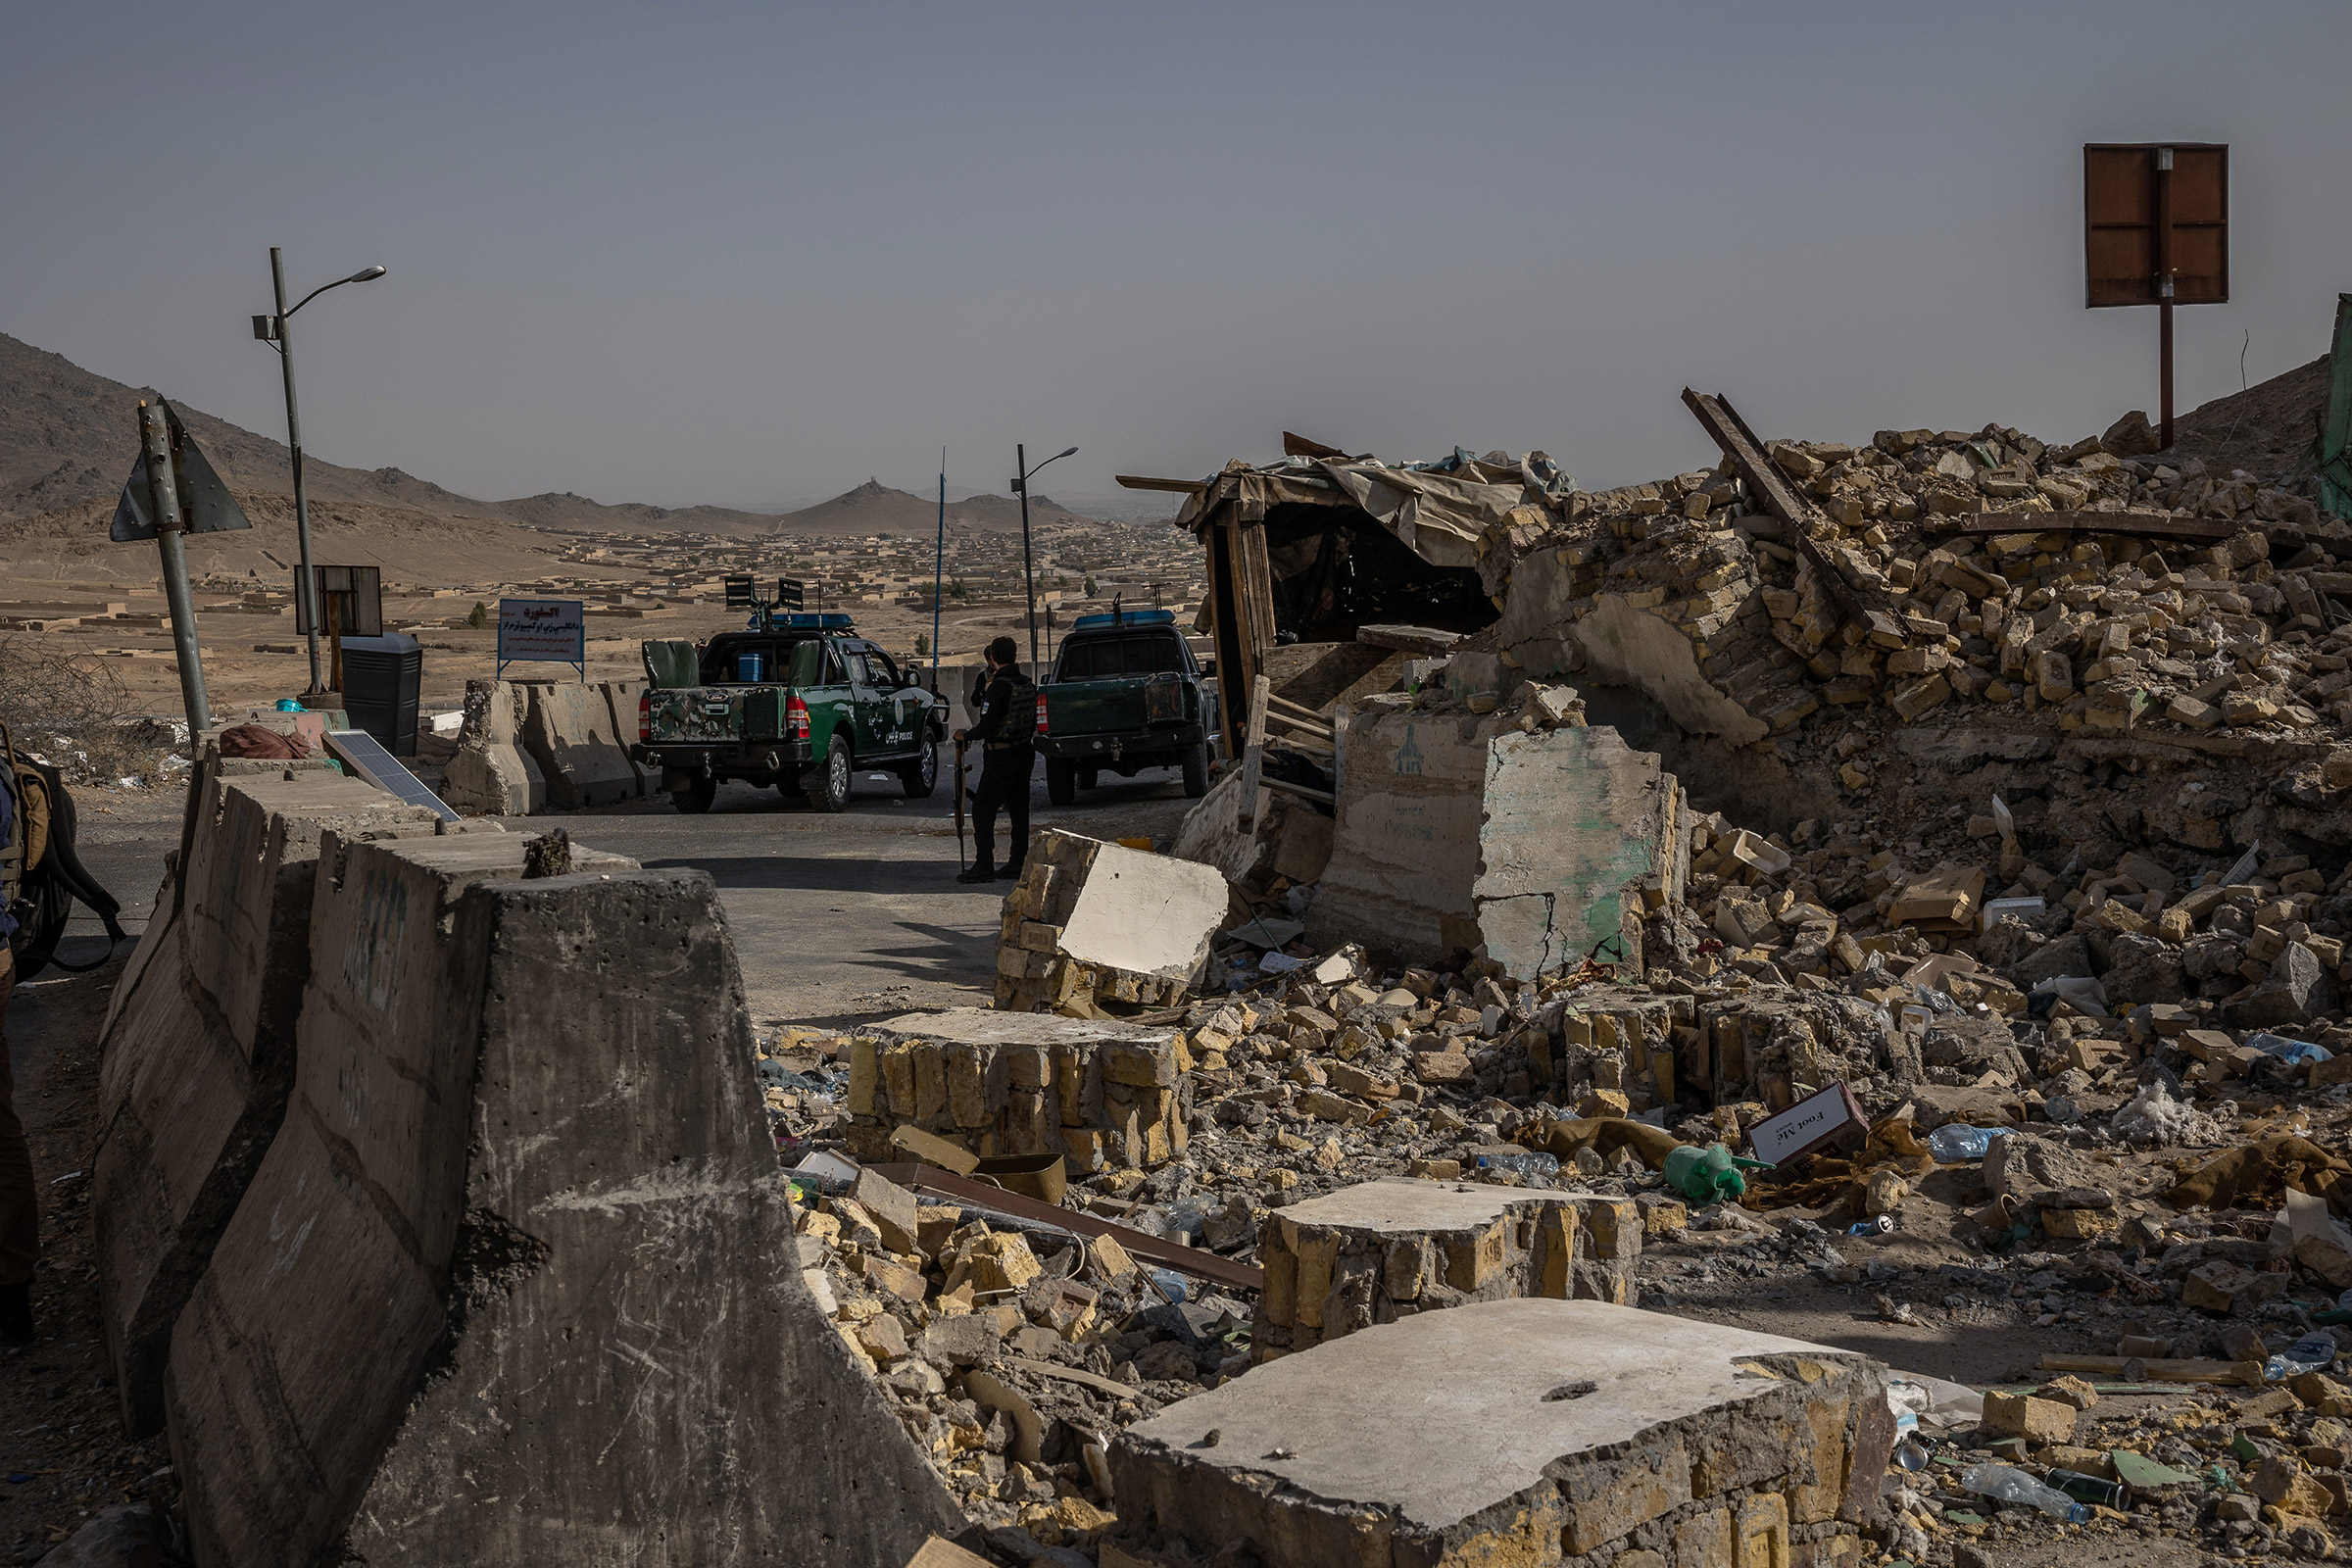 A police outpost, that was destroyed by the Taliban, in Kandahar, Afghanistan on Aug. 4, 2021.